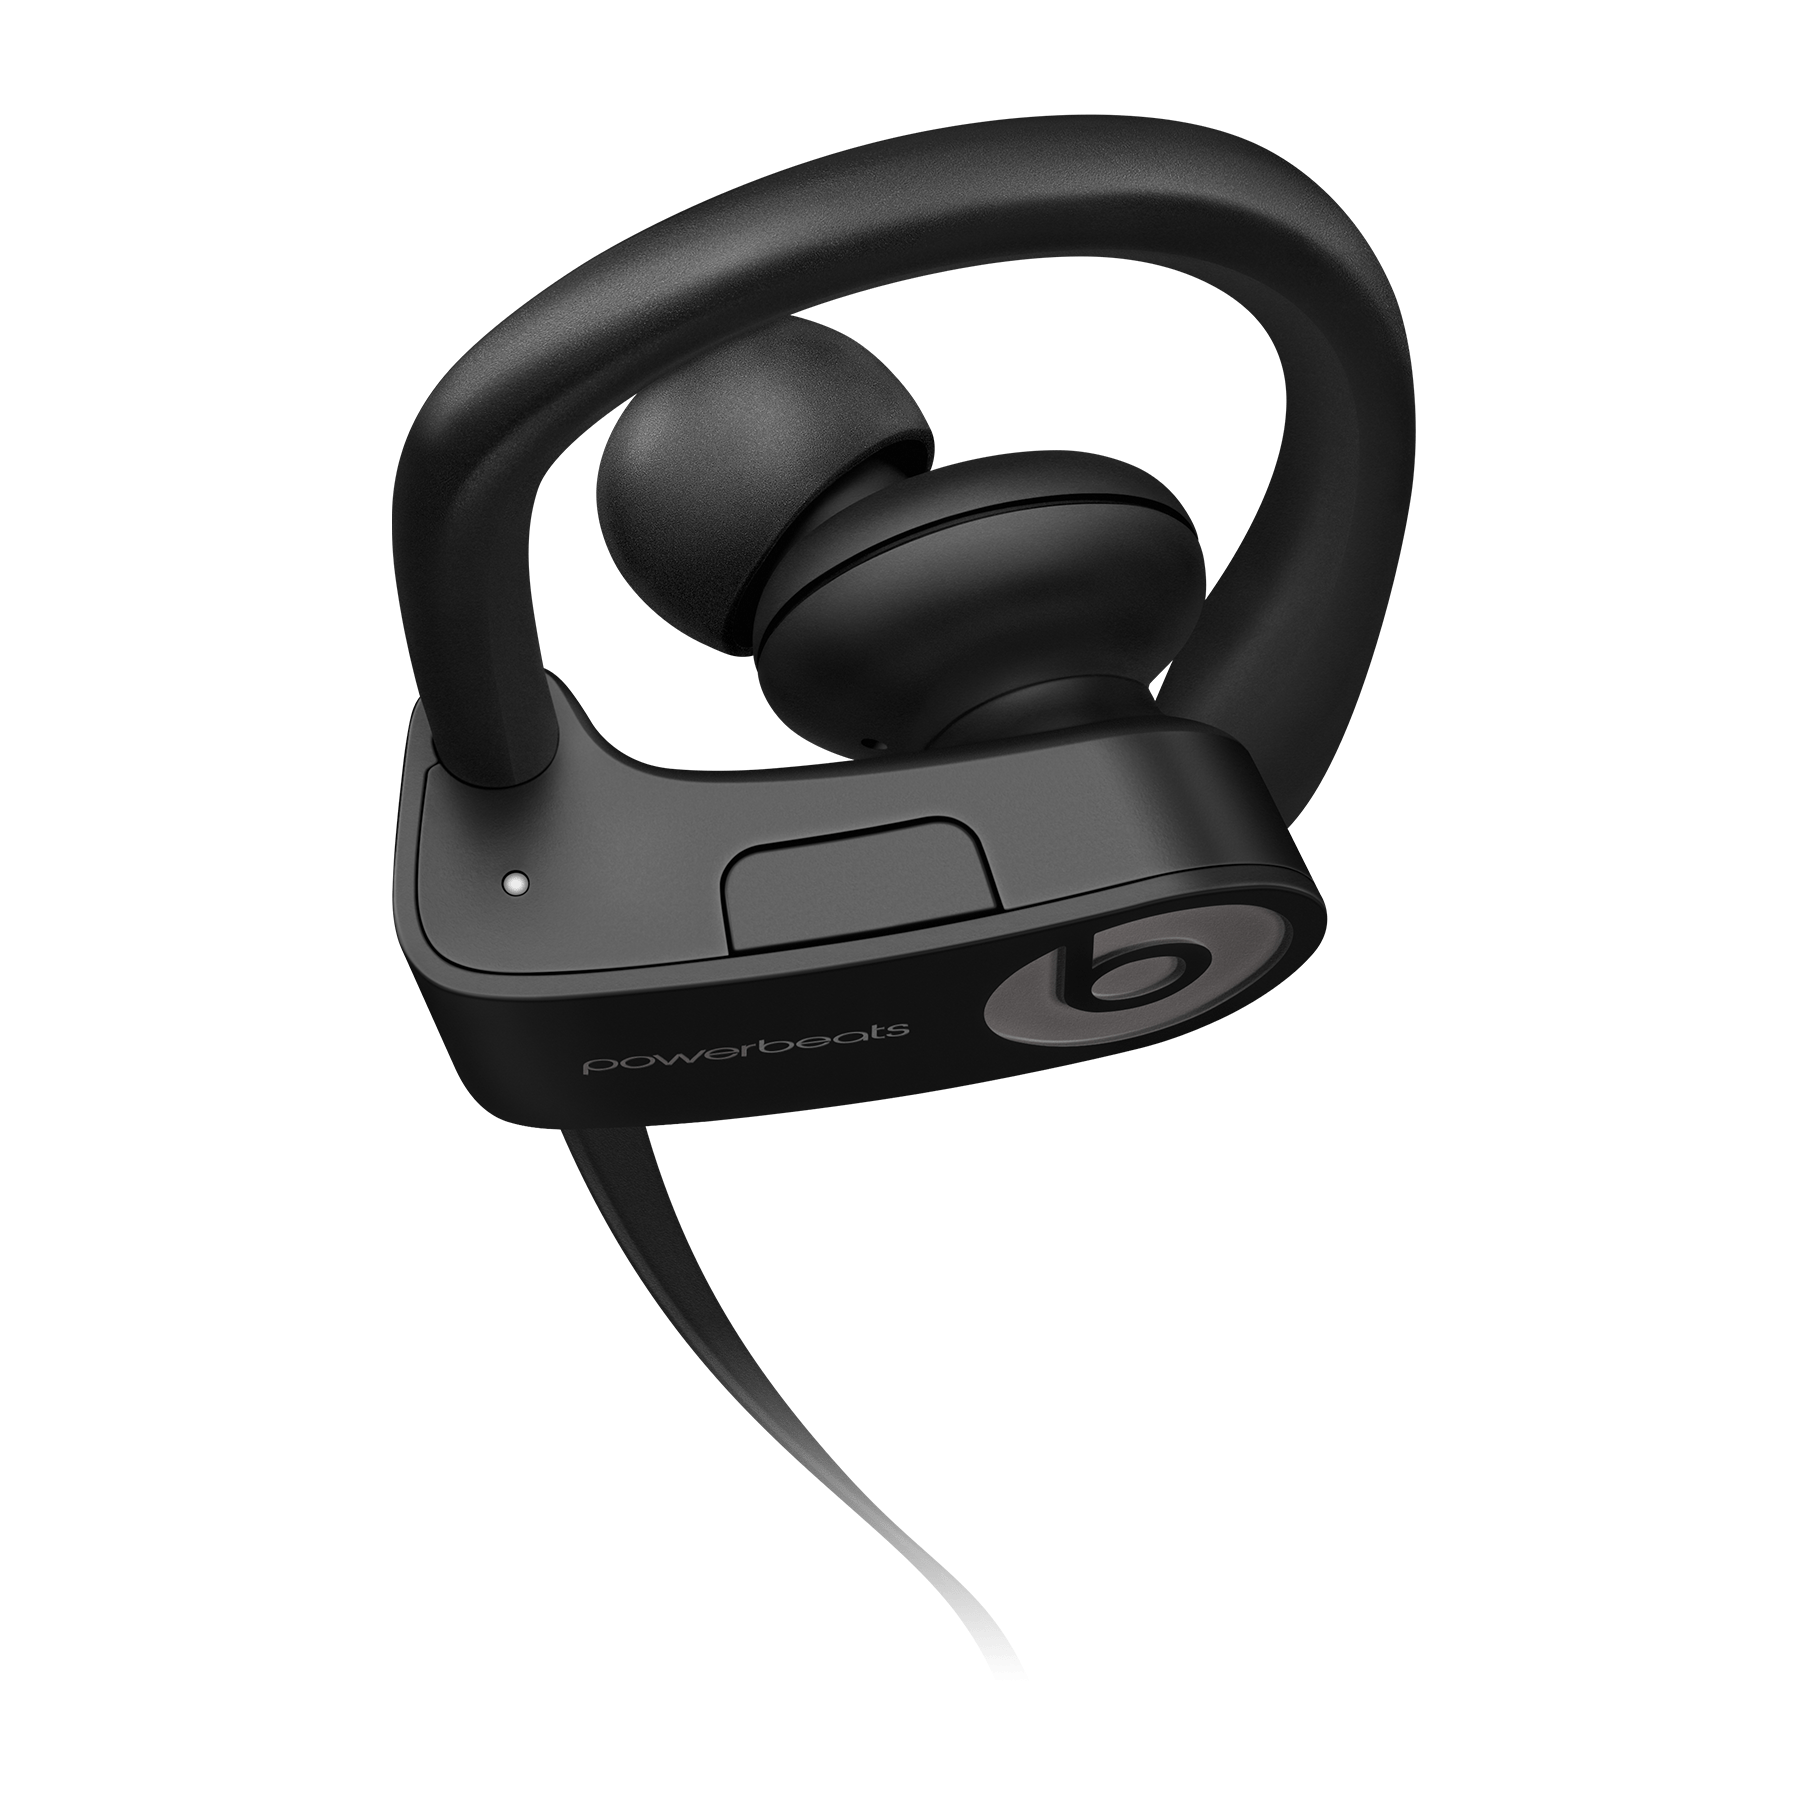 Powerbeats3 Wireless - Beats by Dre 91e591bc6a